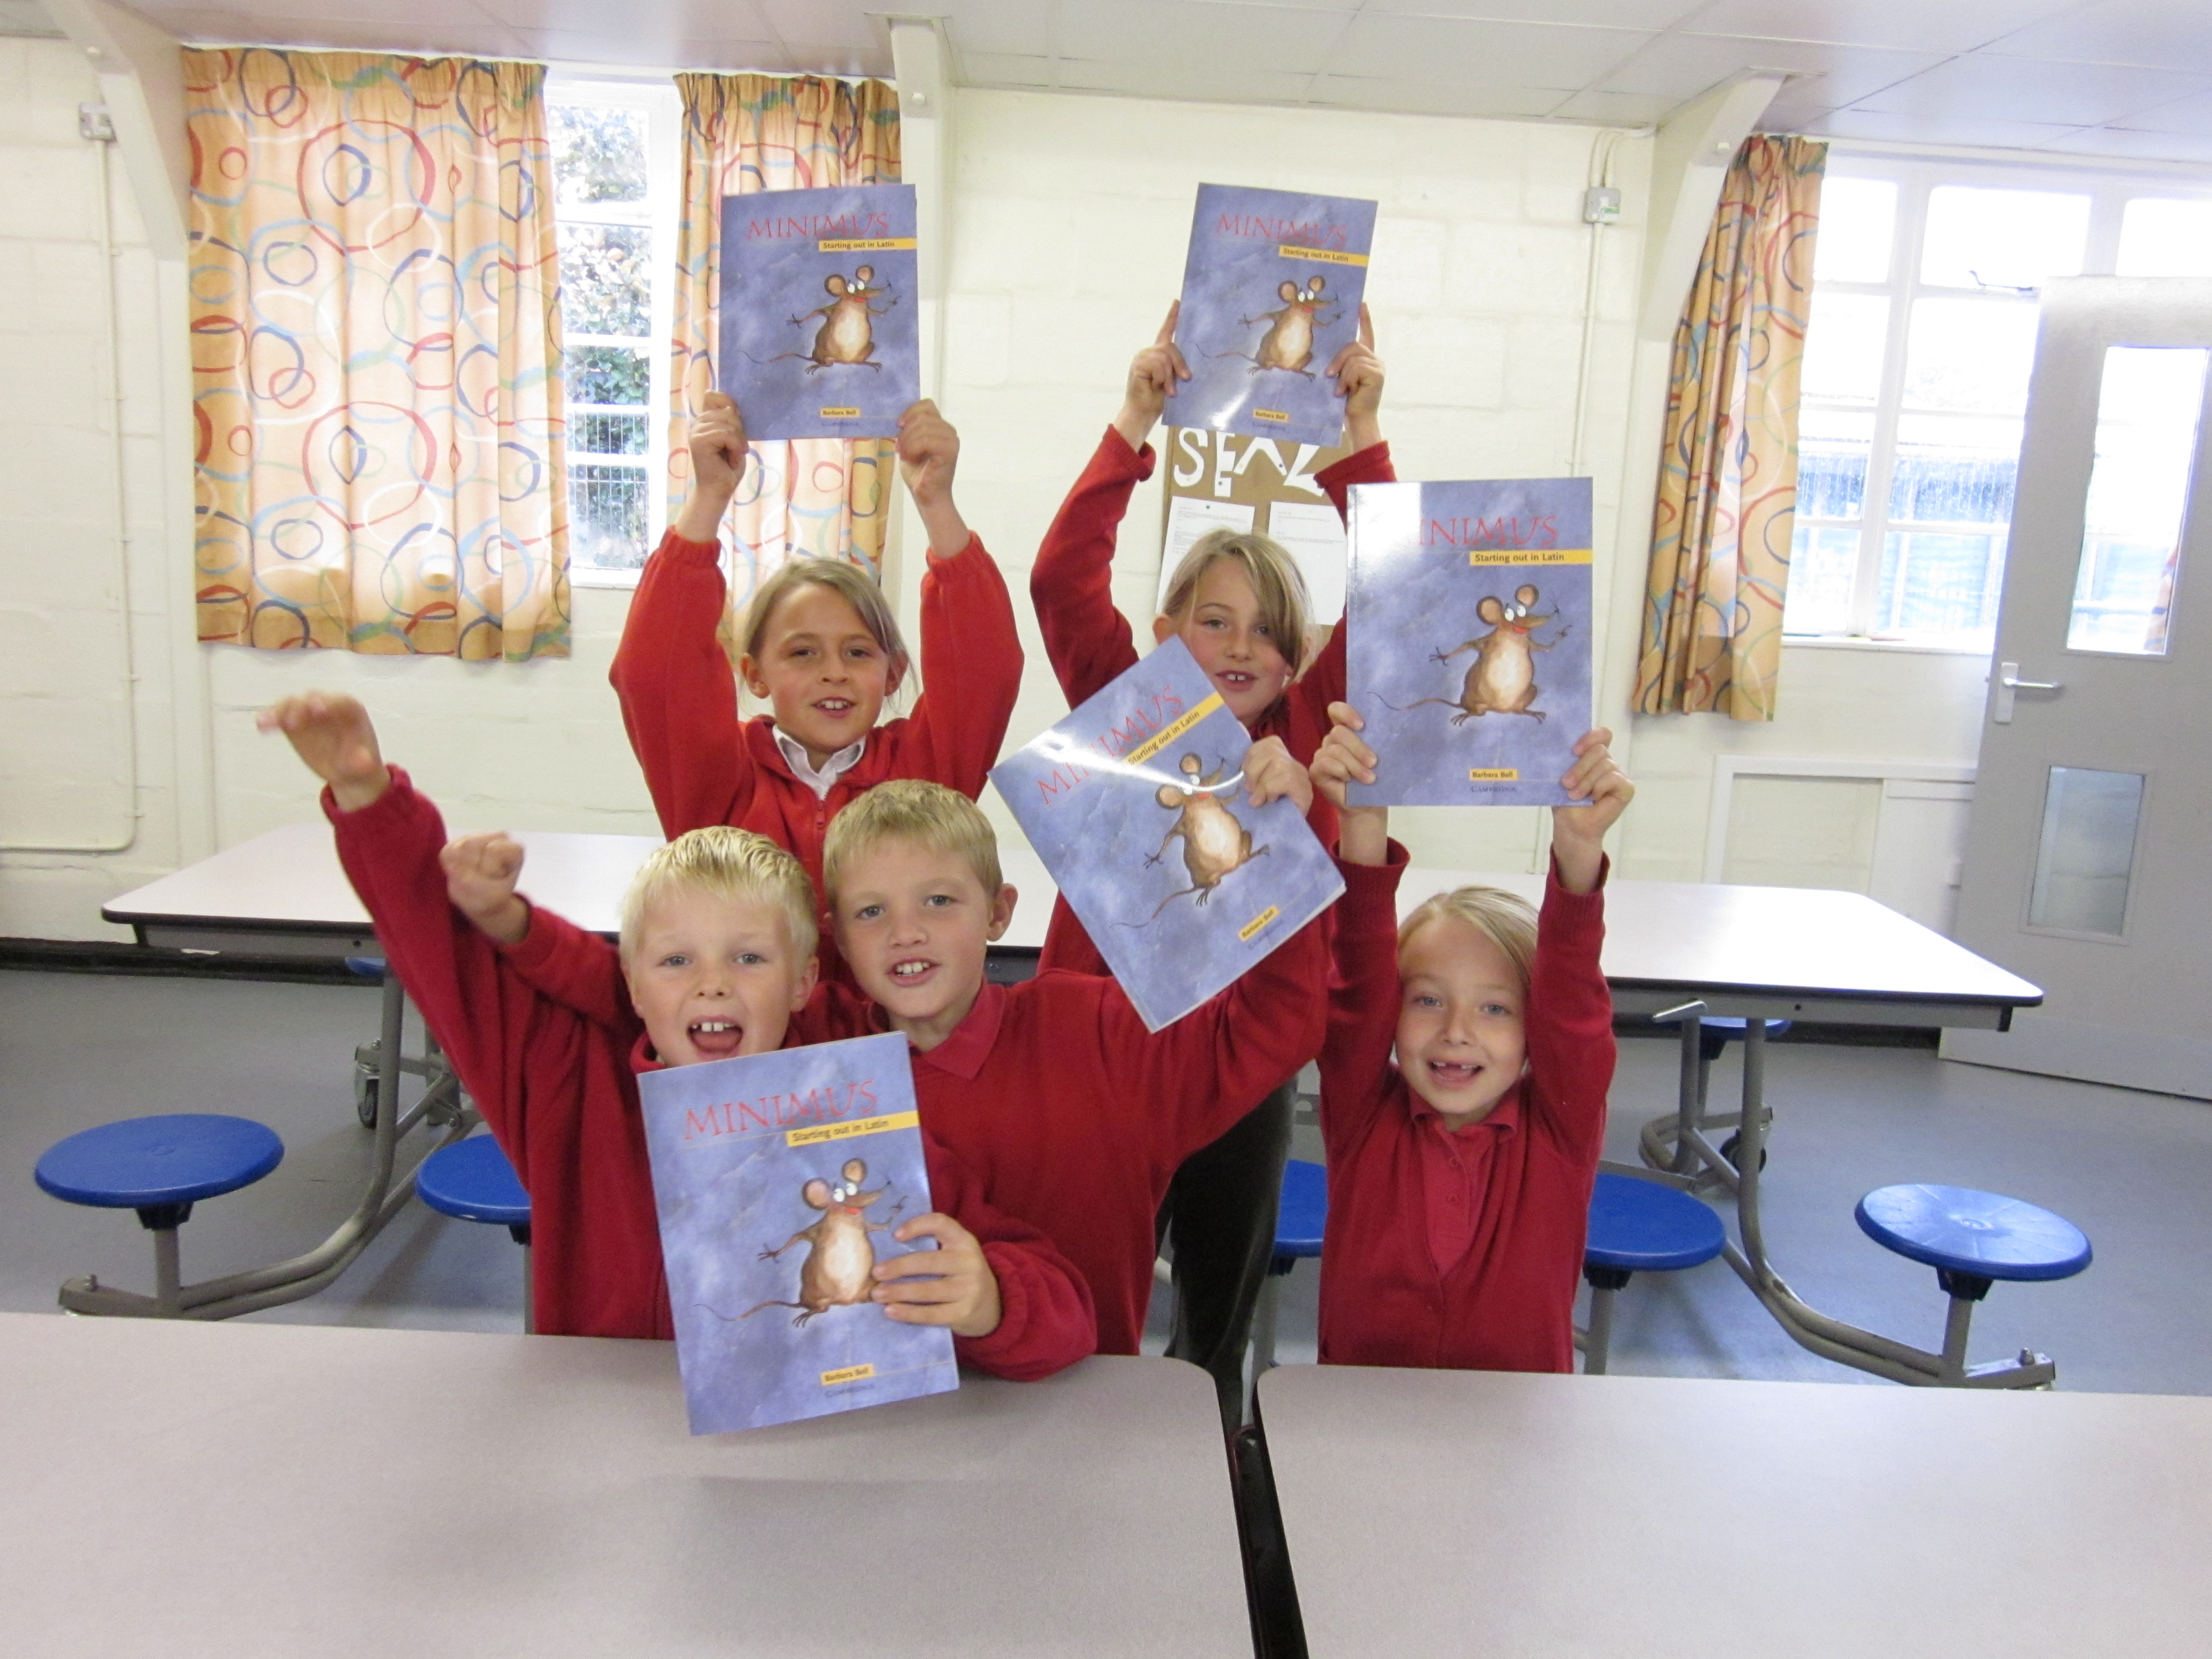 Primary pupils holding Minimus textbooks